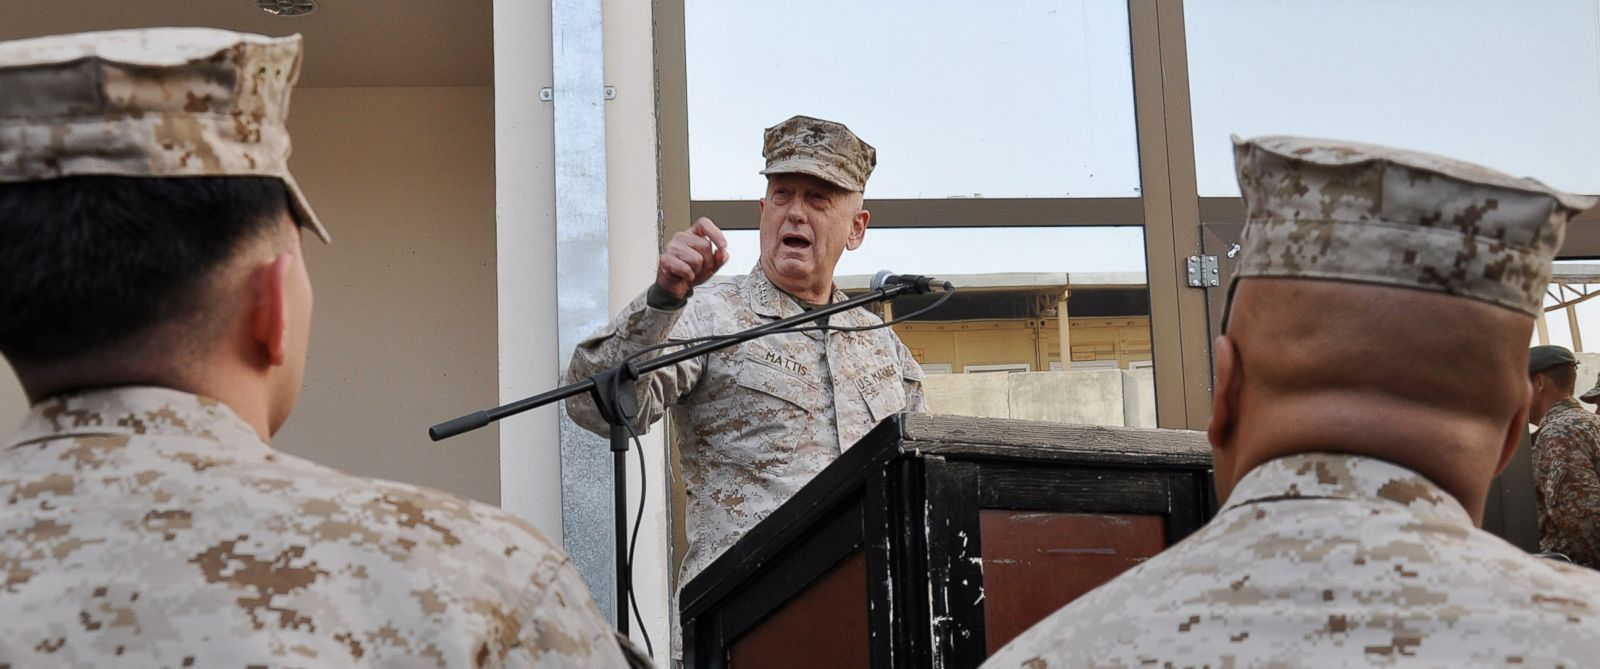 PHOTO: U.S. Marine Corps Gen. James N. Mattis, Commander, U.S. Central Command, addresses members from the Combined Joint Interagency Task Force 435, Dec. 25, 2011, Camp Phoenix, Kabul, Afghanistan.